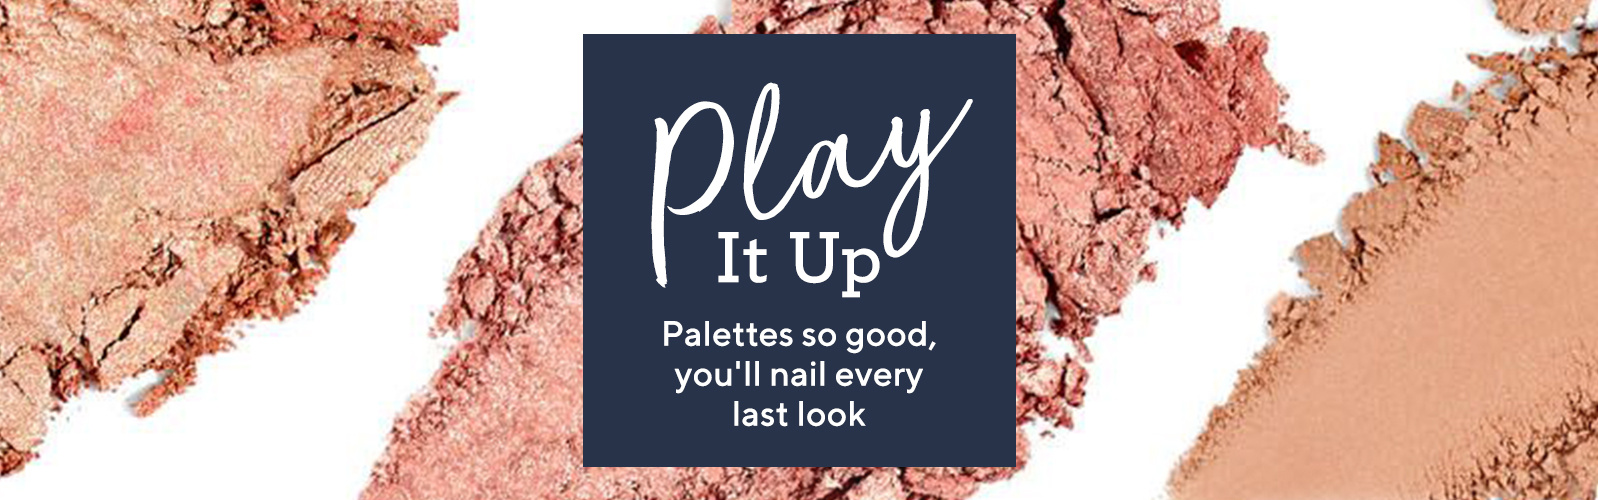 Play It Up.  Palettes so good, you'll nail every last look.